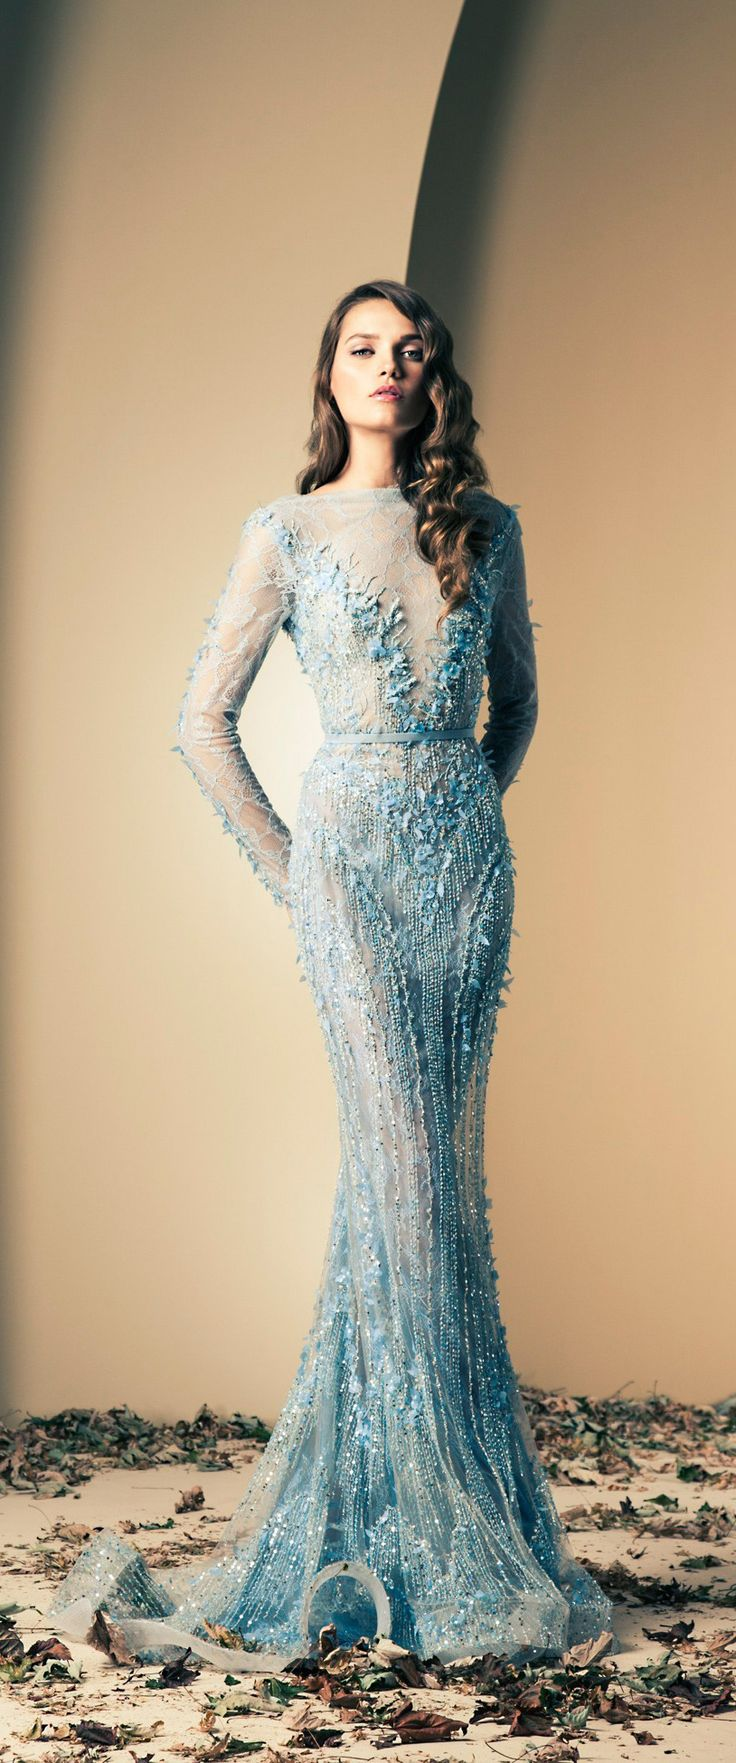 Ziad nakad ice blue embellished wedding gown wedding for Ice blue wedding dress